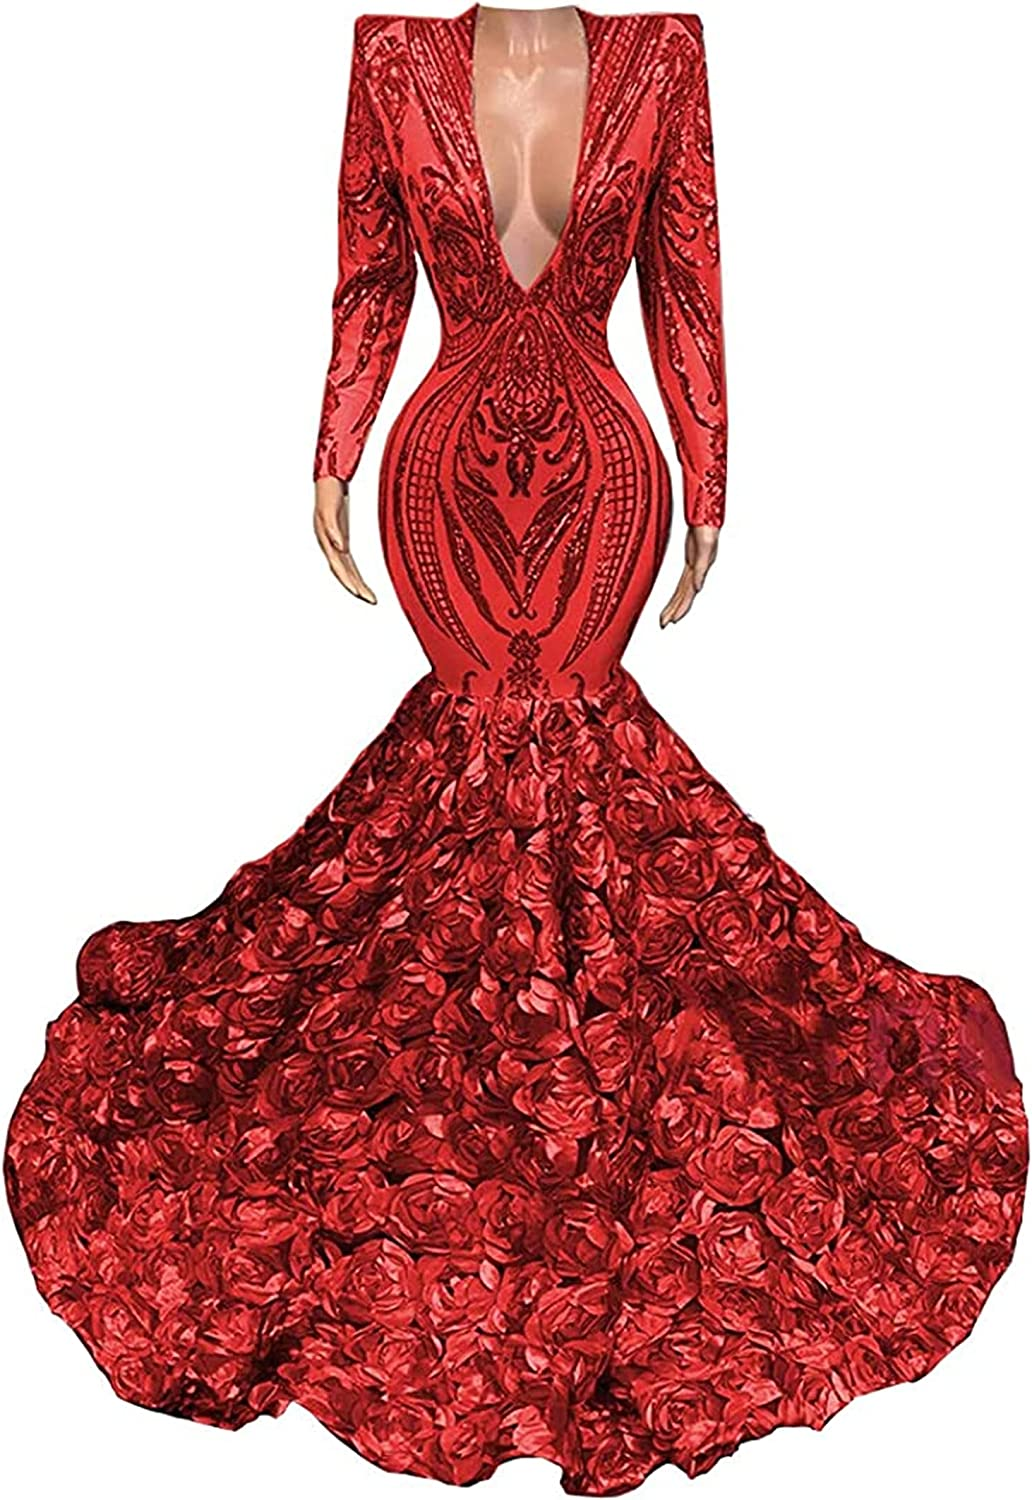 Long Sleeve V Neck Mermaid Sequined Organza Prom Evening Shower Party Dress Pageant Celebrity Gown